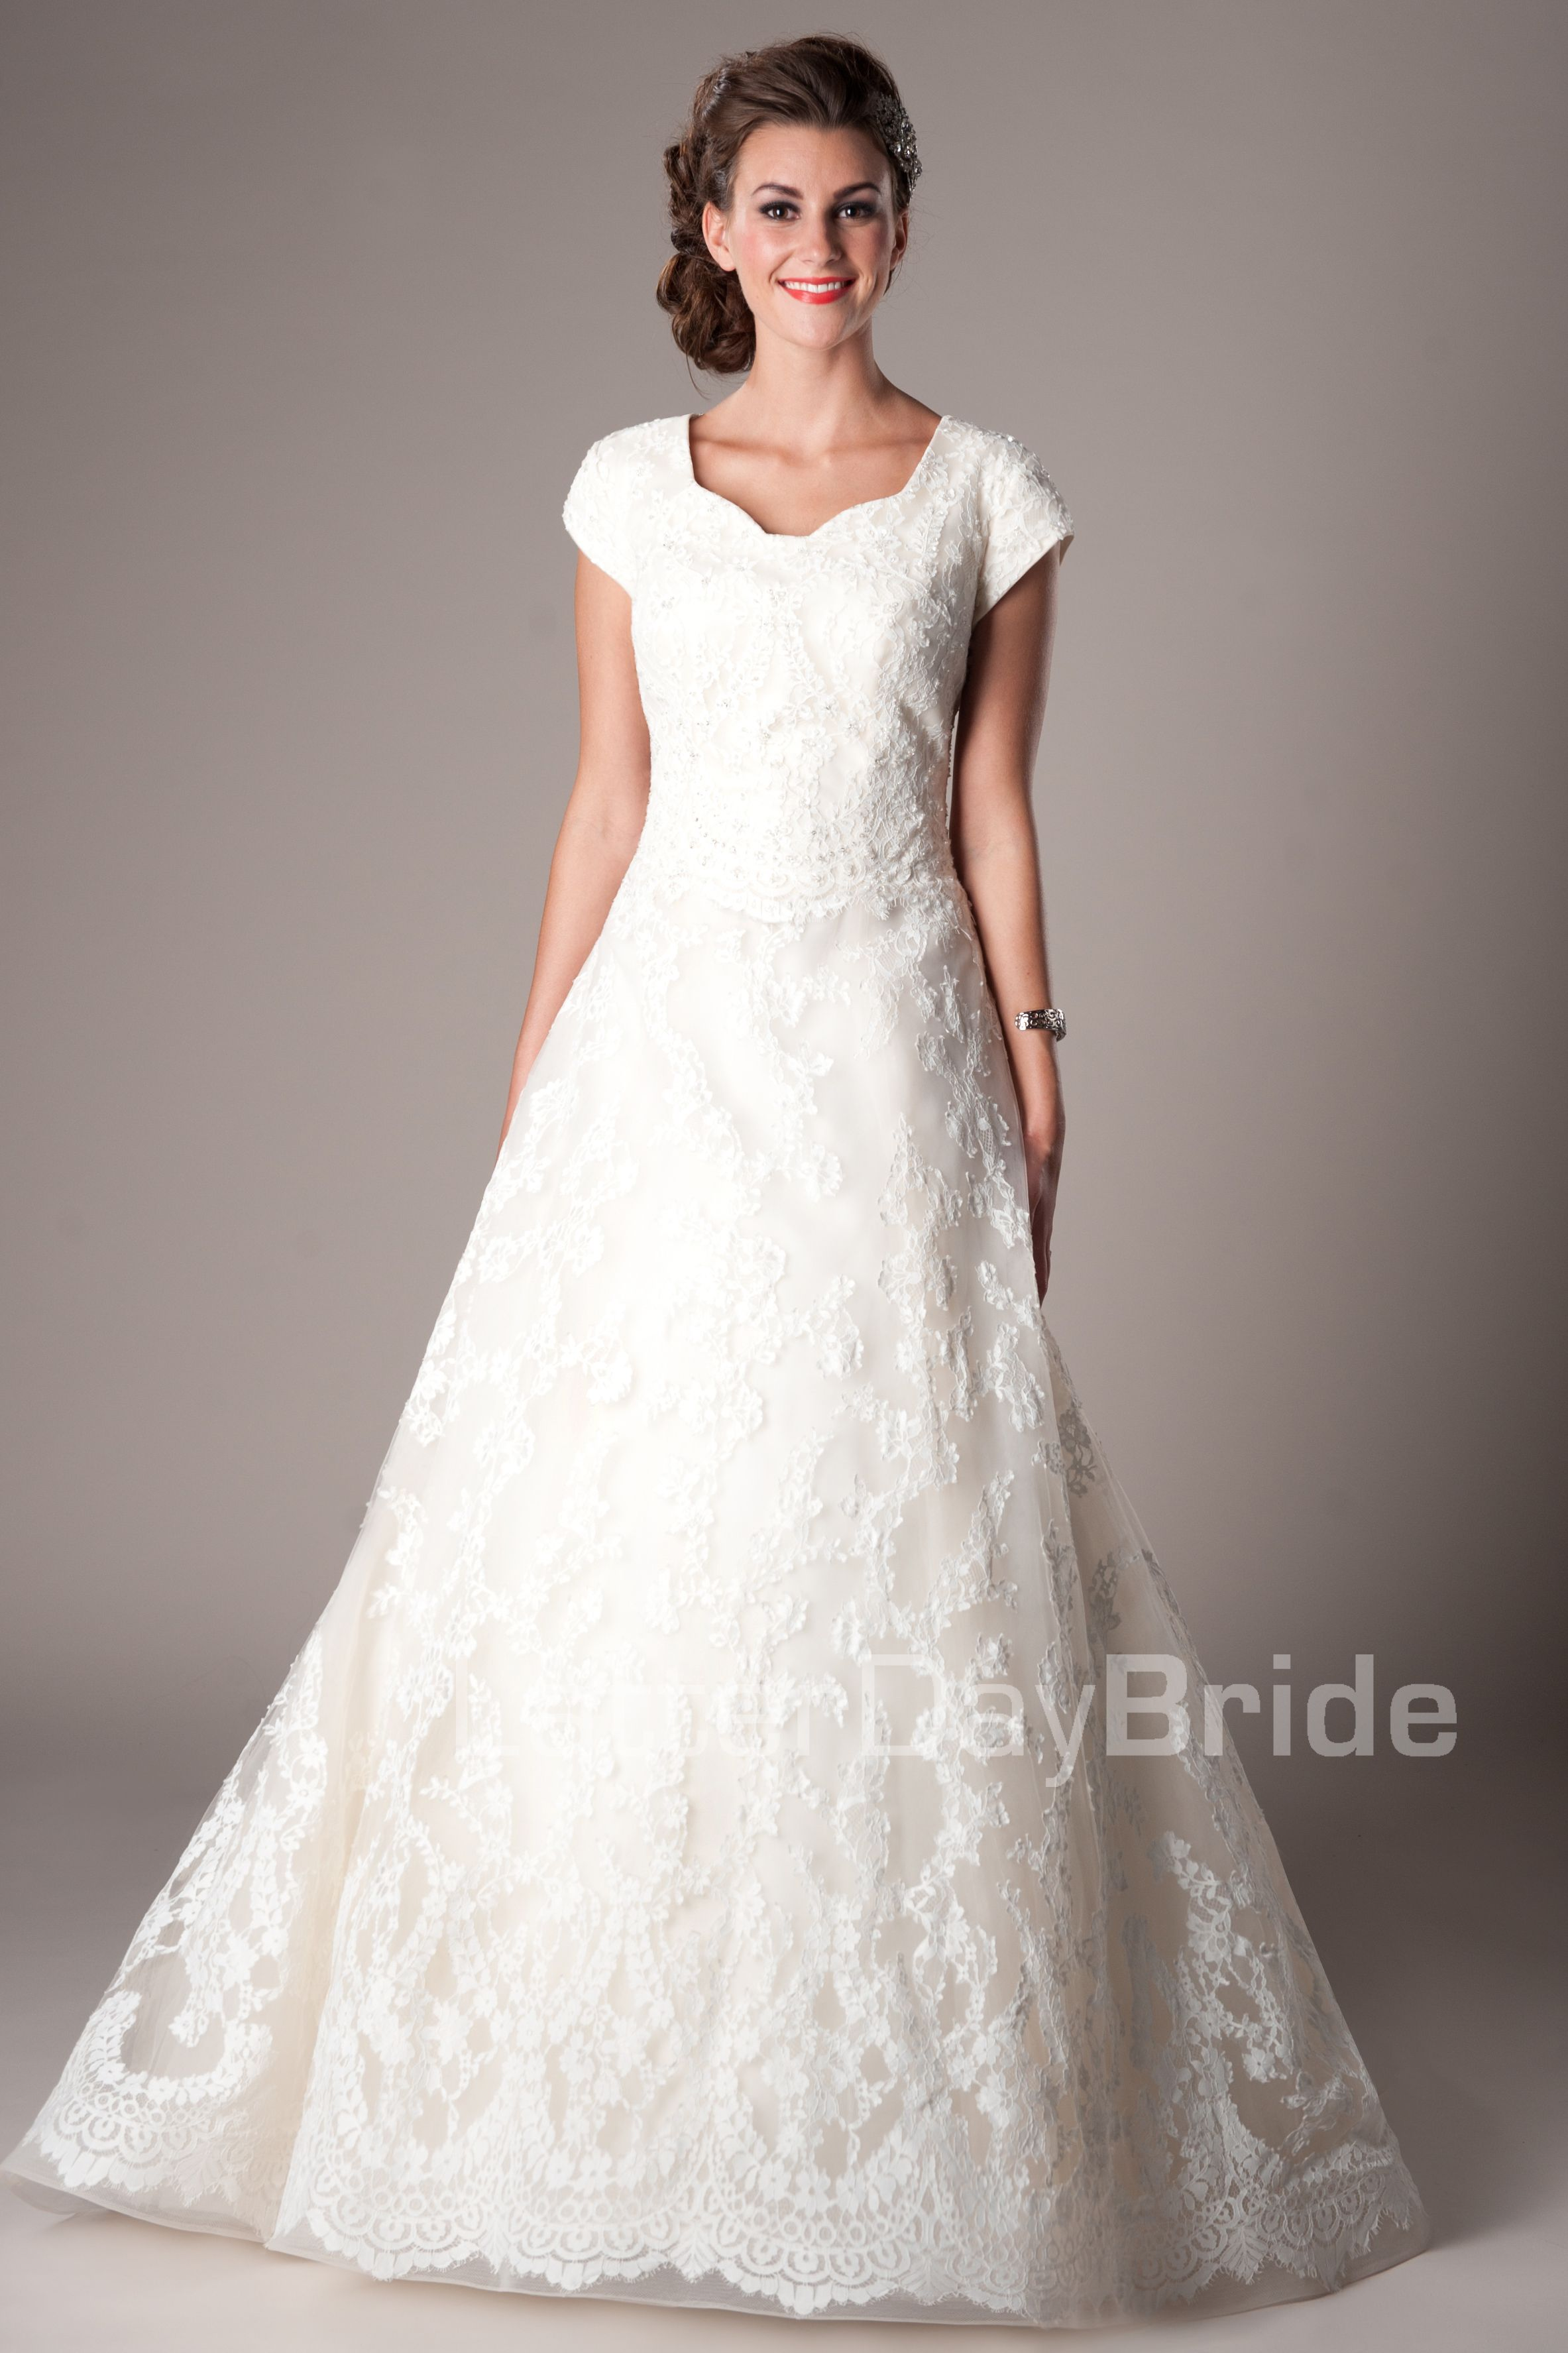 Modest wedding dresses mormon lds temple marriage for Lds wedding dresses utah